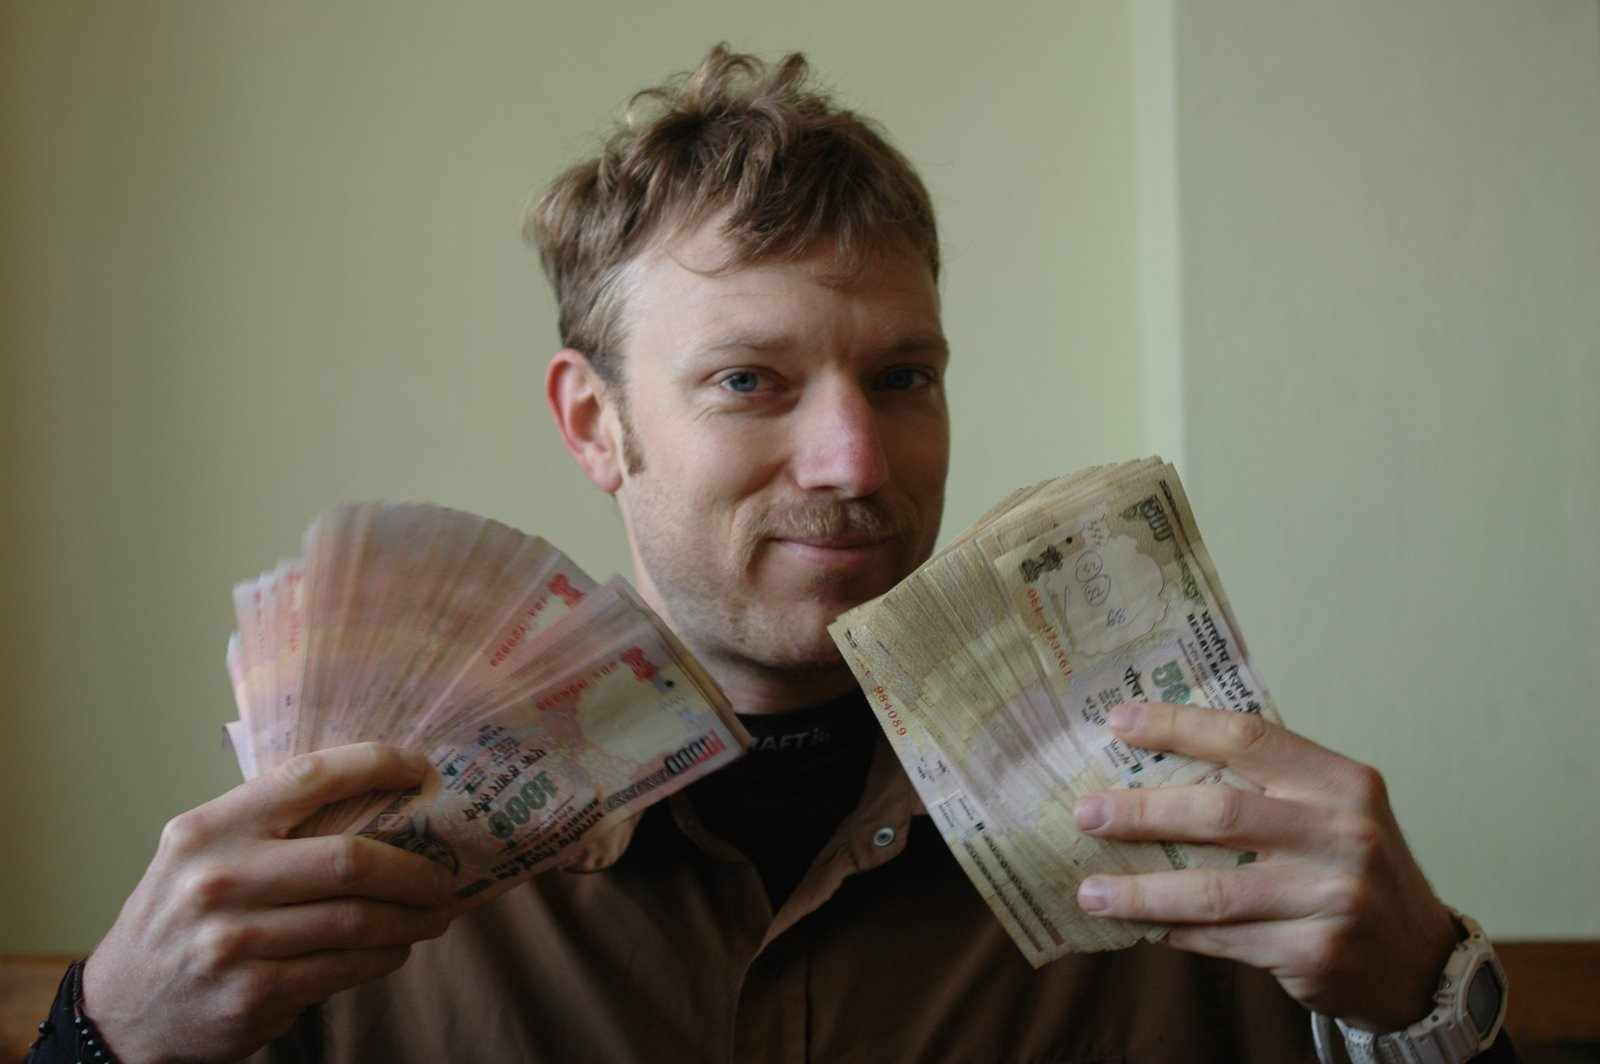 Endurance racer Harlan Price in India with the spoils of victory.